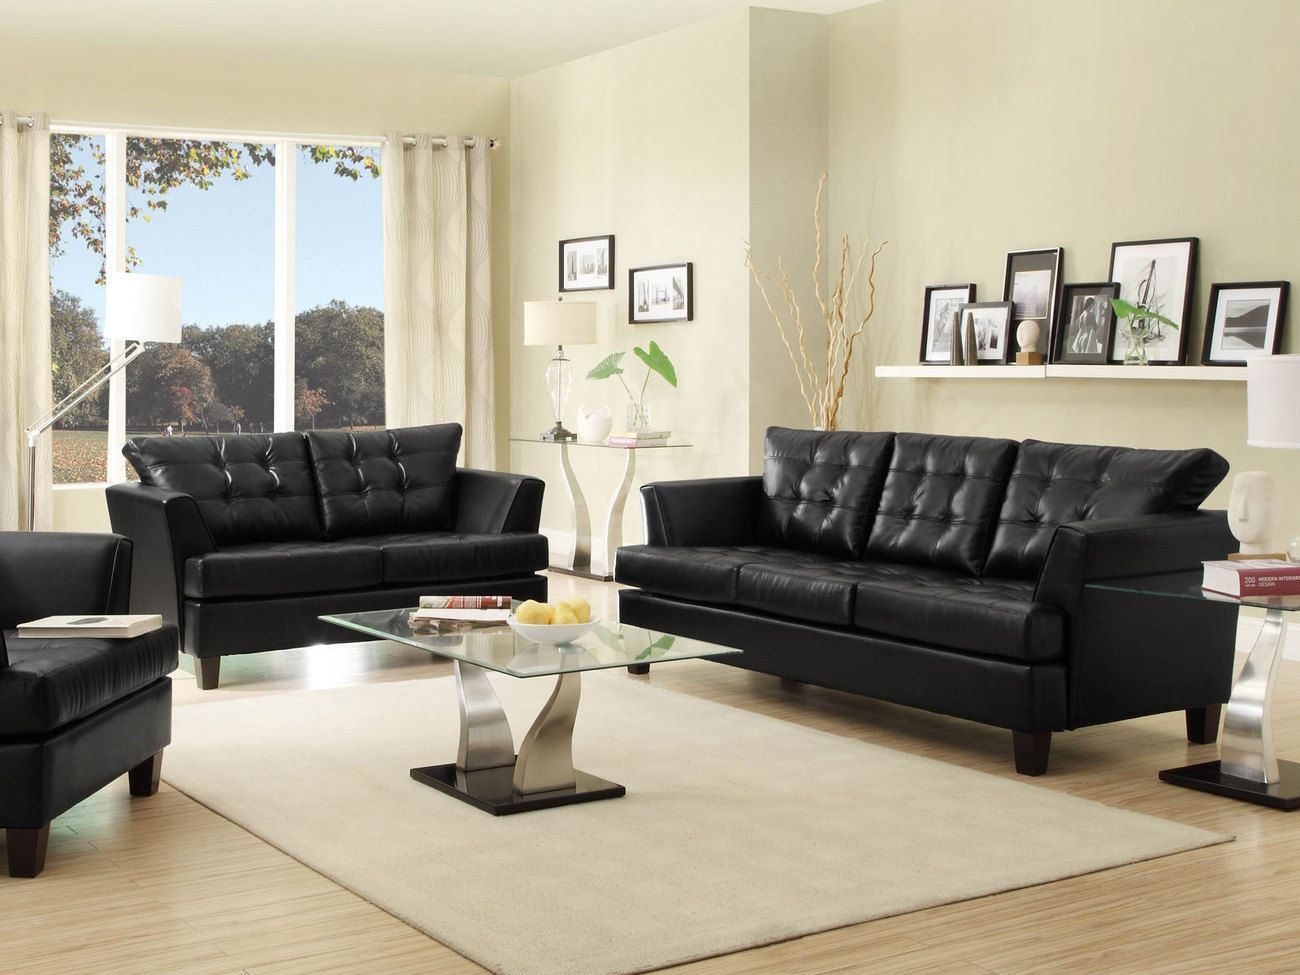 Living Room Decor With Black Leather Couches Leather Sofa Living Room Black Leather Sofa Living Room Black Furniture Living Room